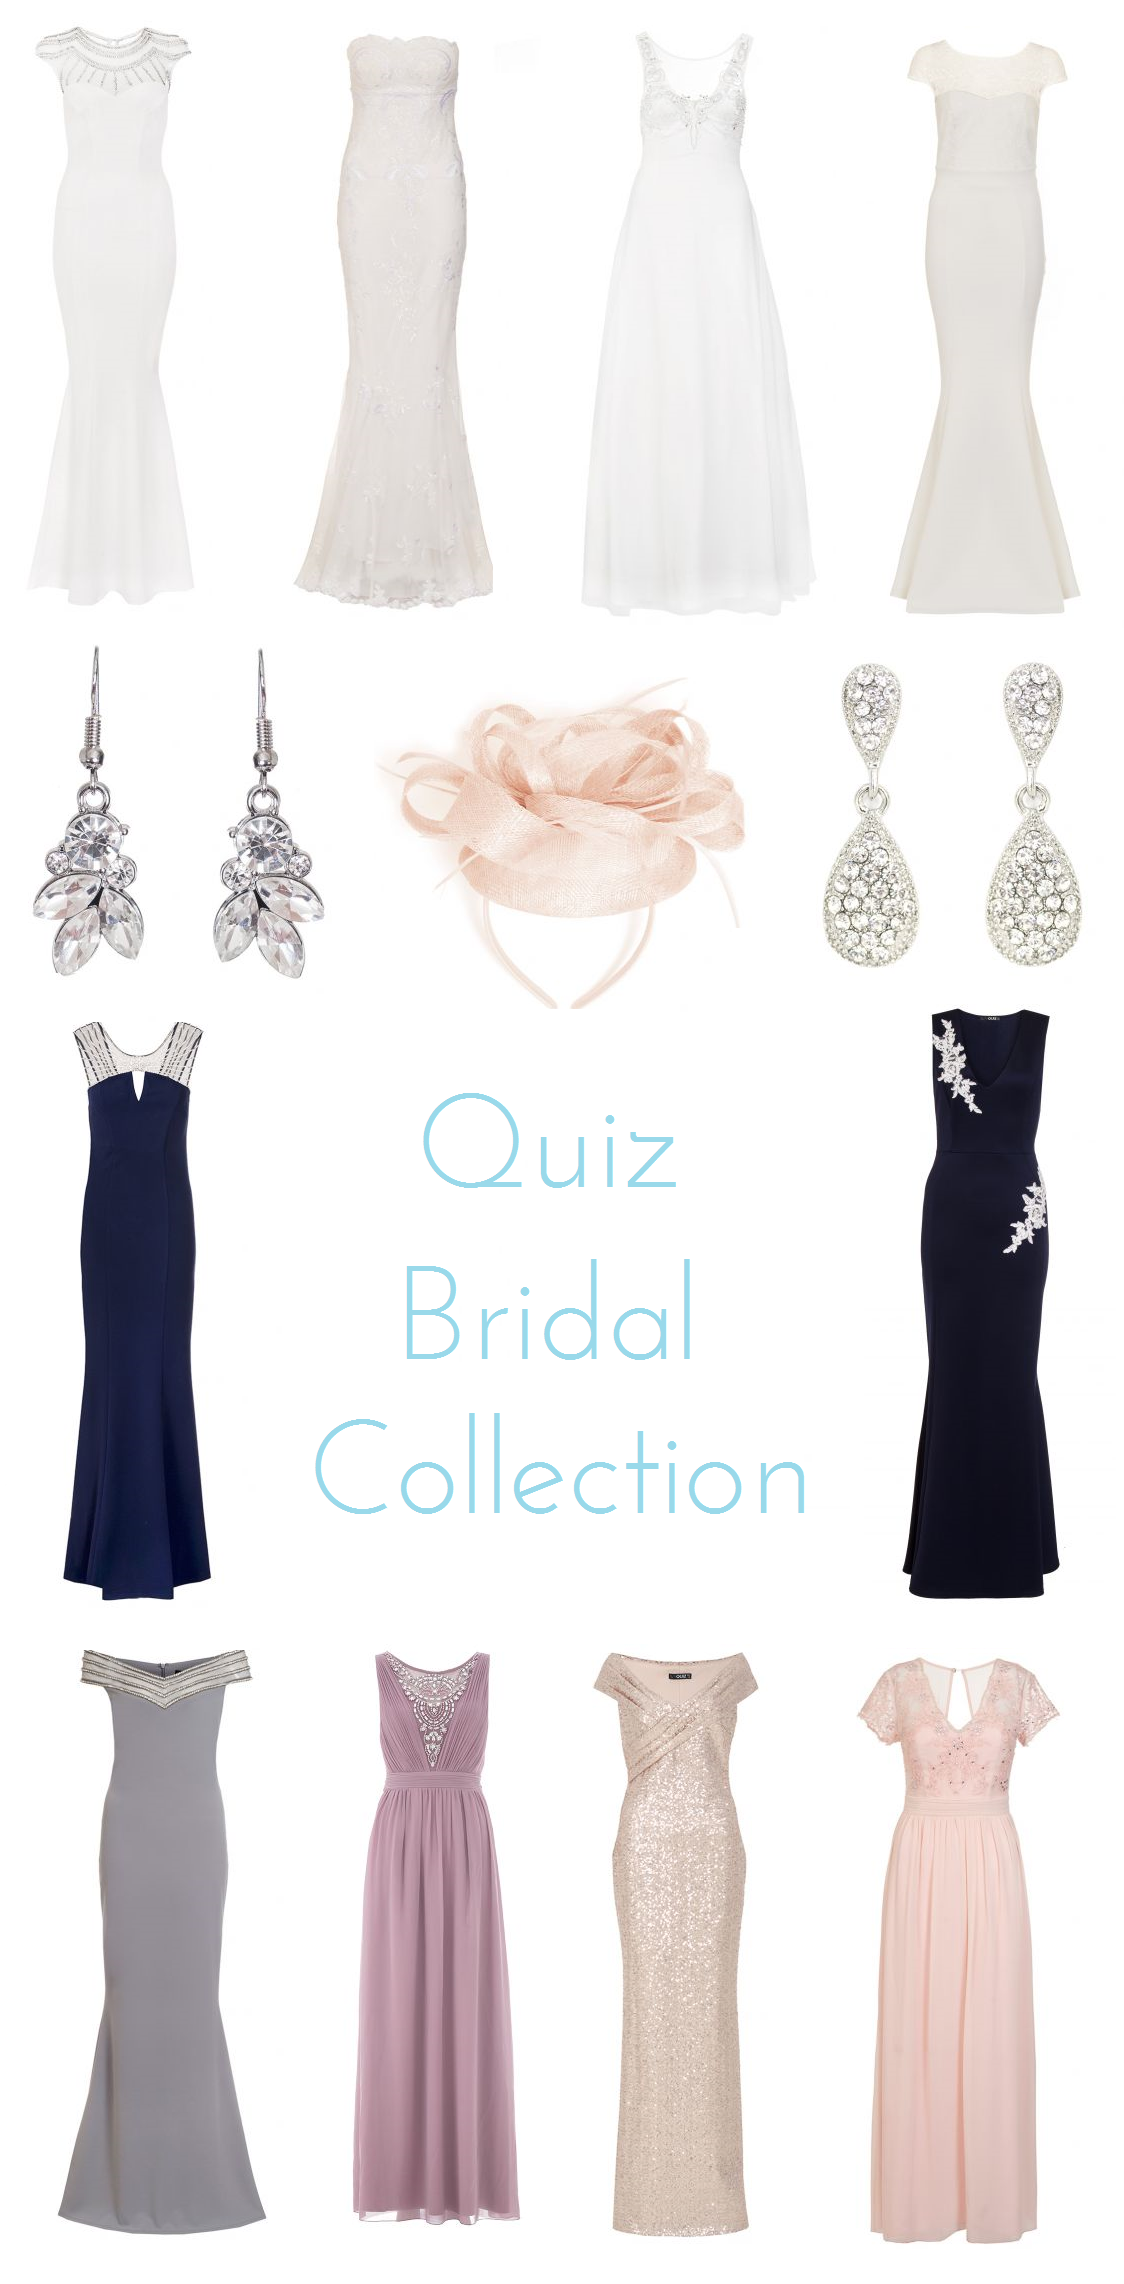 Quiz Bridal Collection